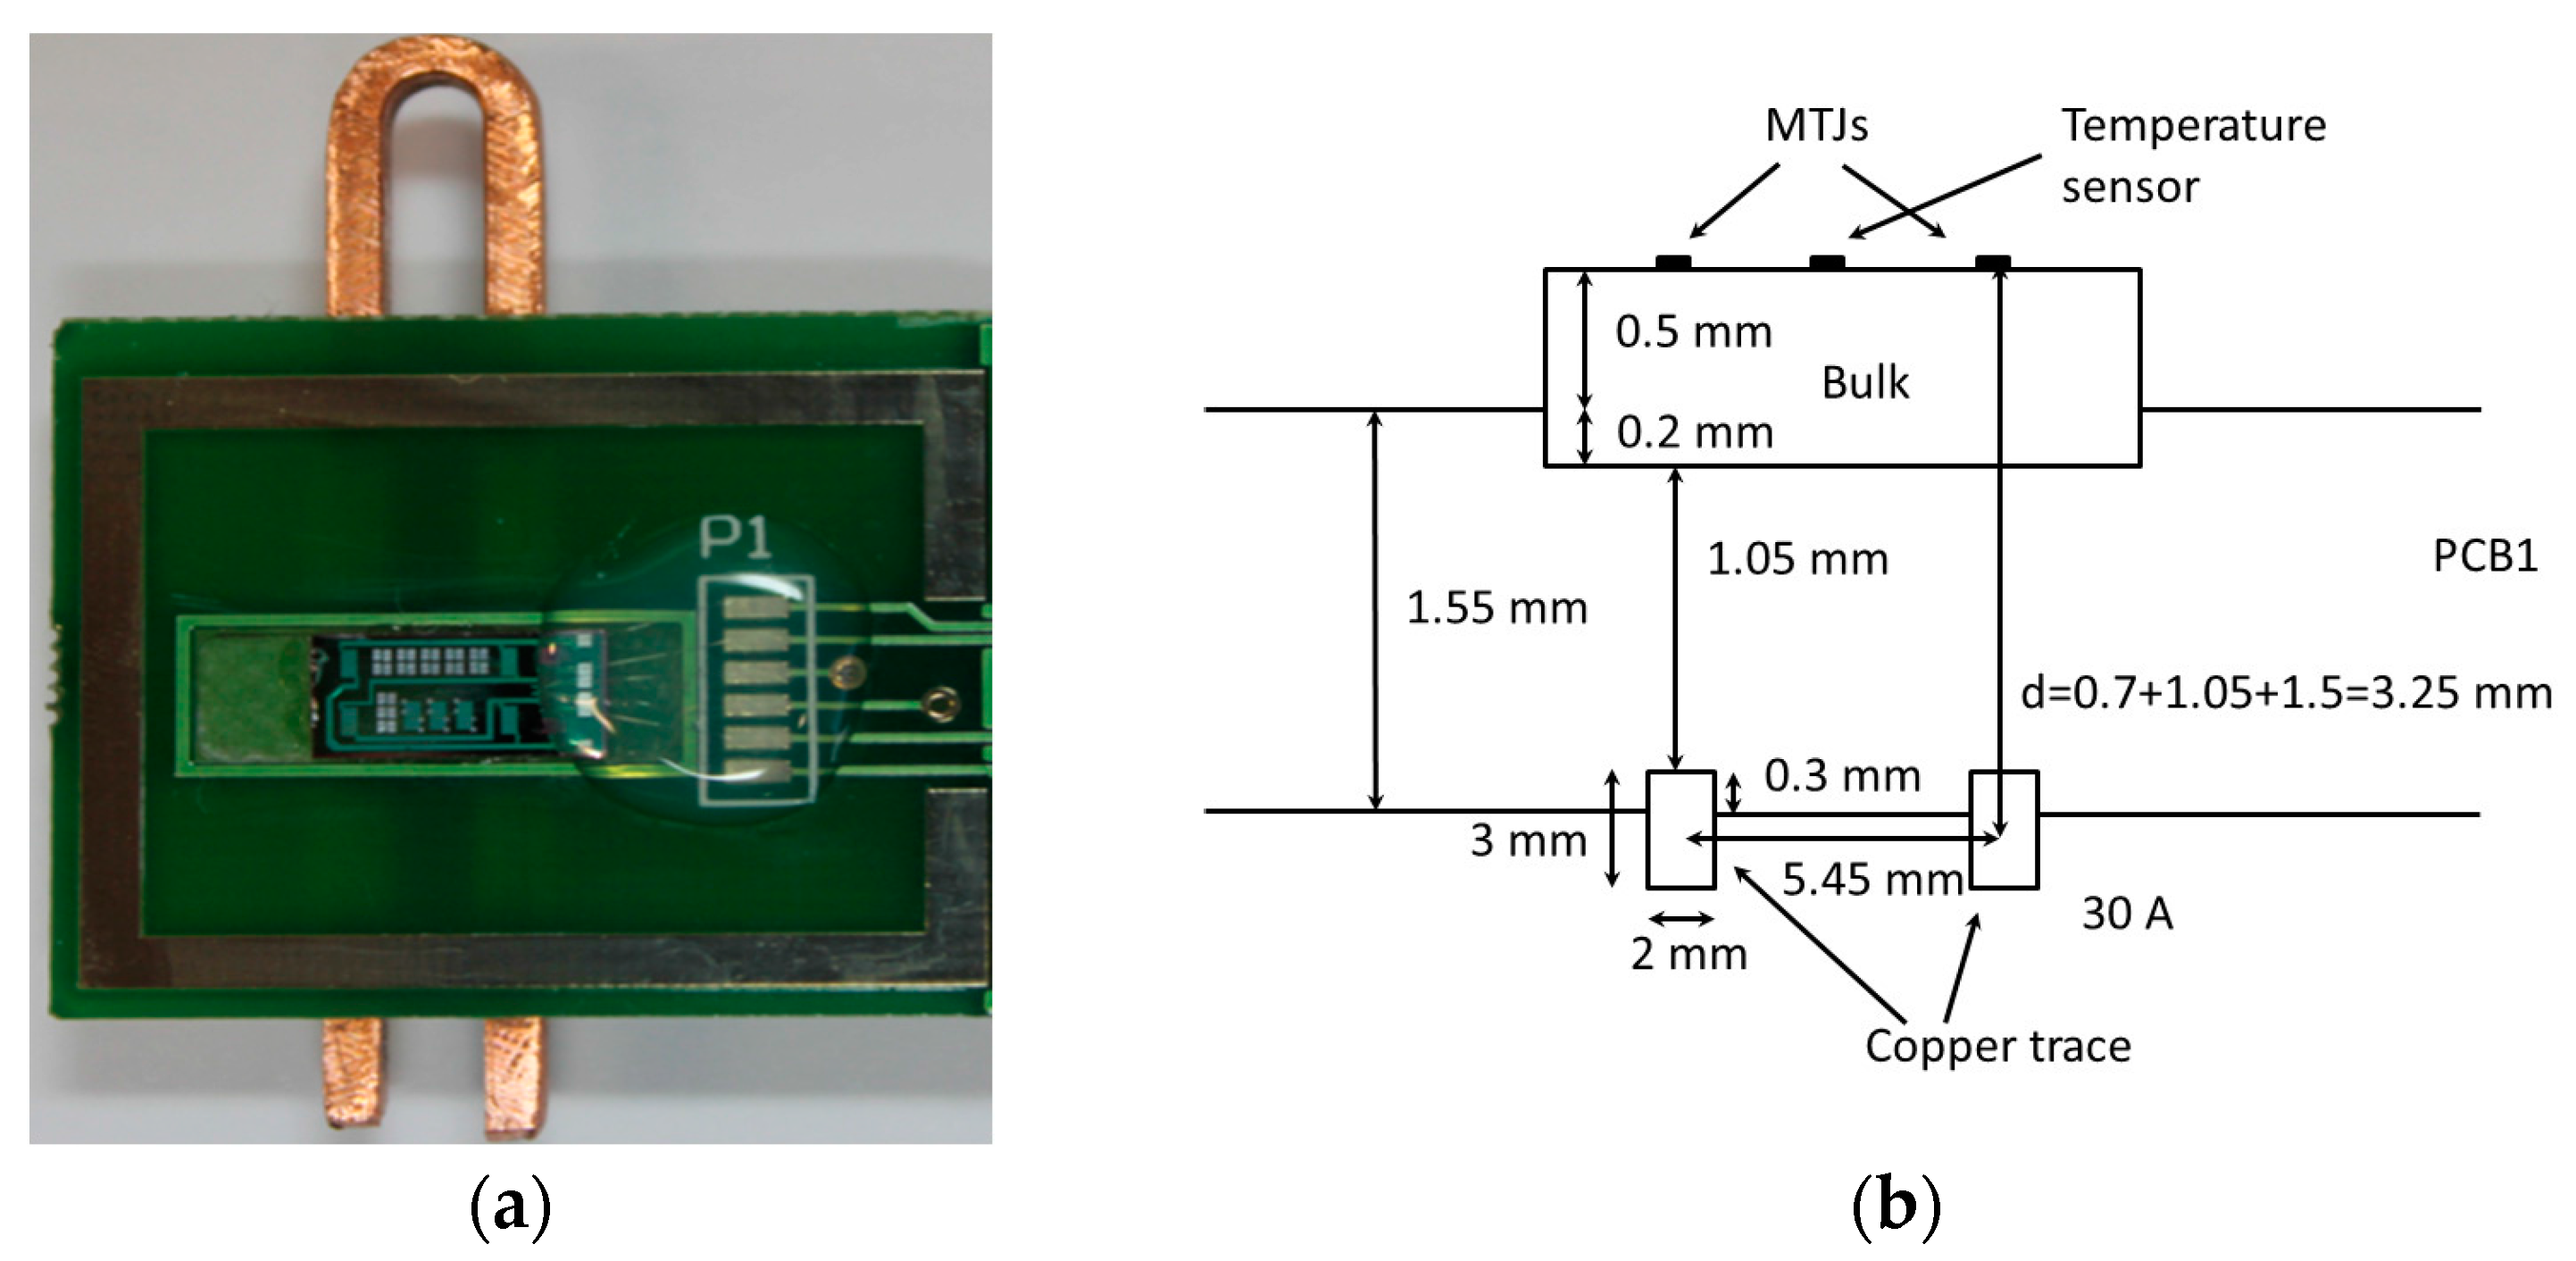 Materials Free Full Text Electronic Energy Meter Based On A Smart Power Solution Ic 10 01134 G004